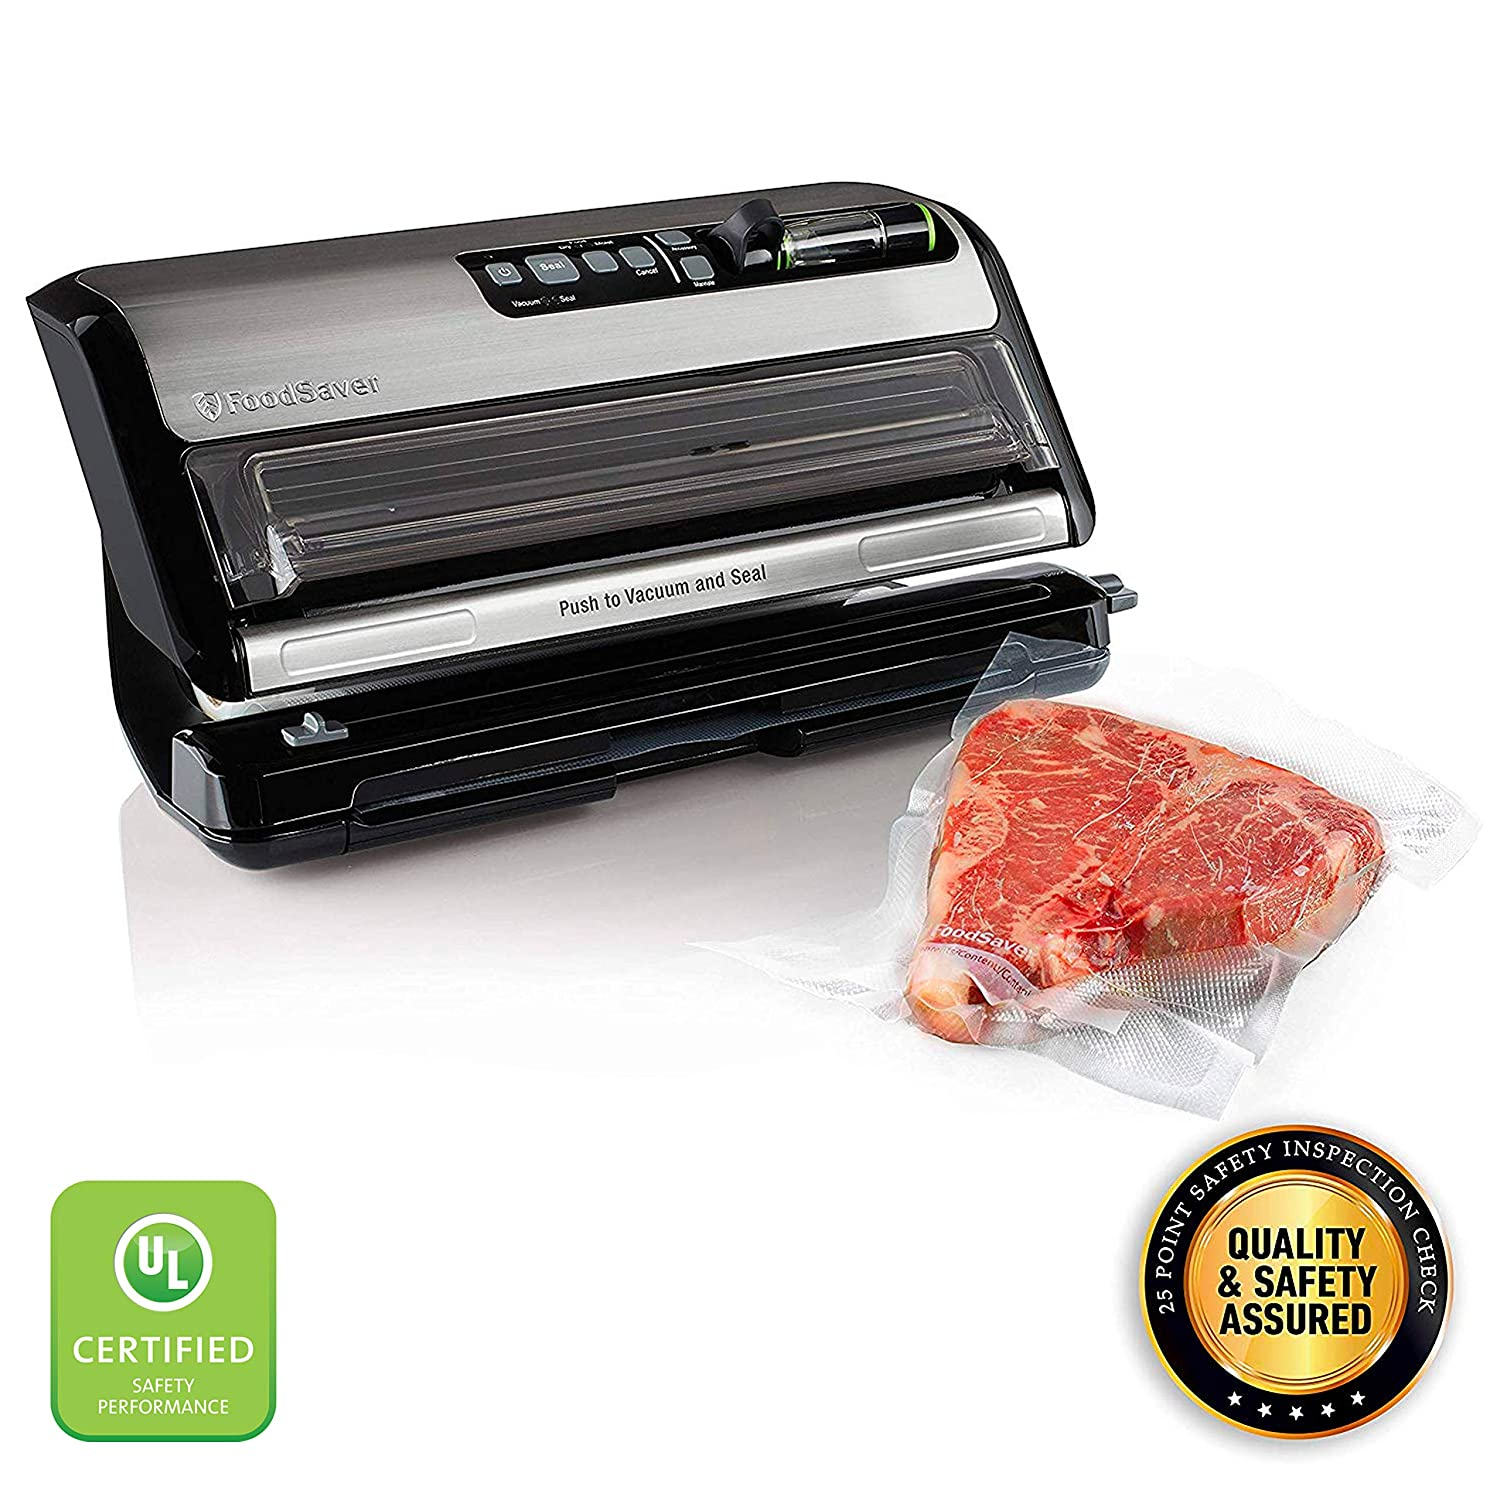 FoodSaver FM5200 2-in-1 Automatic Vacuum Sealer